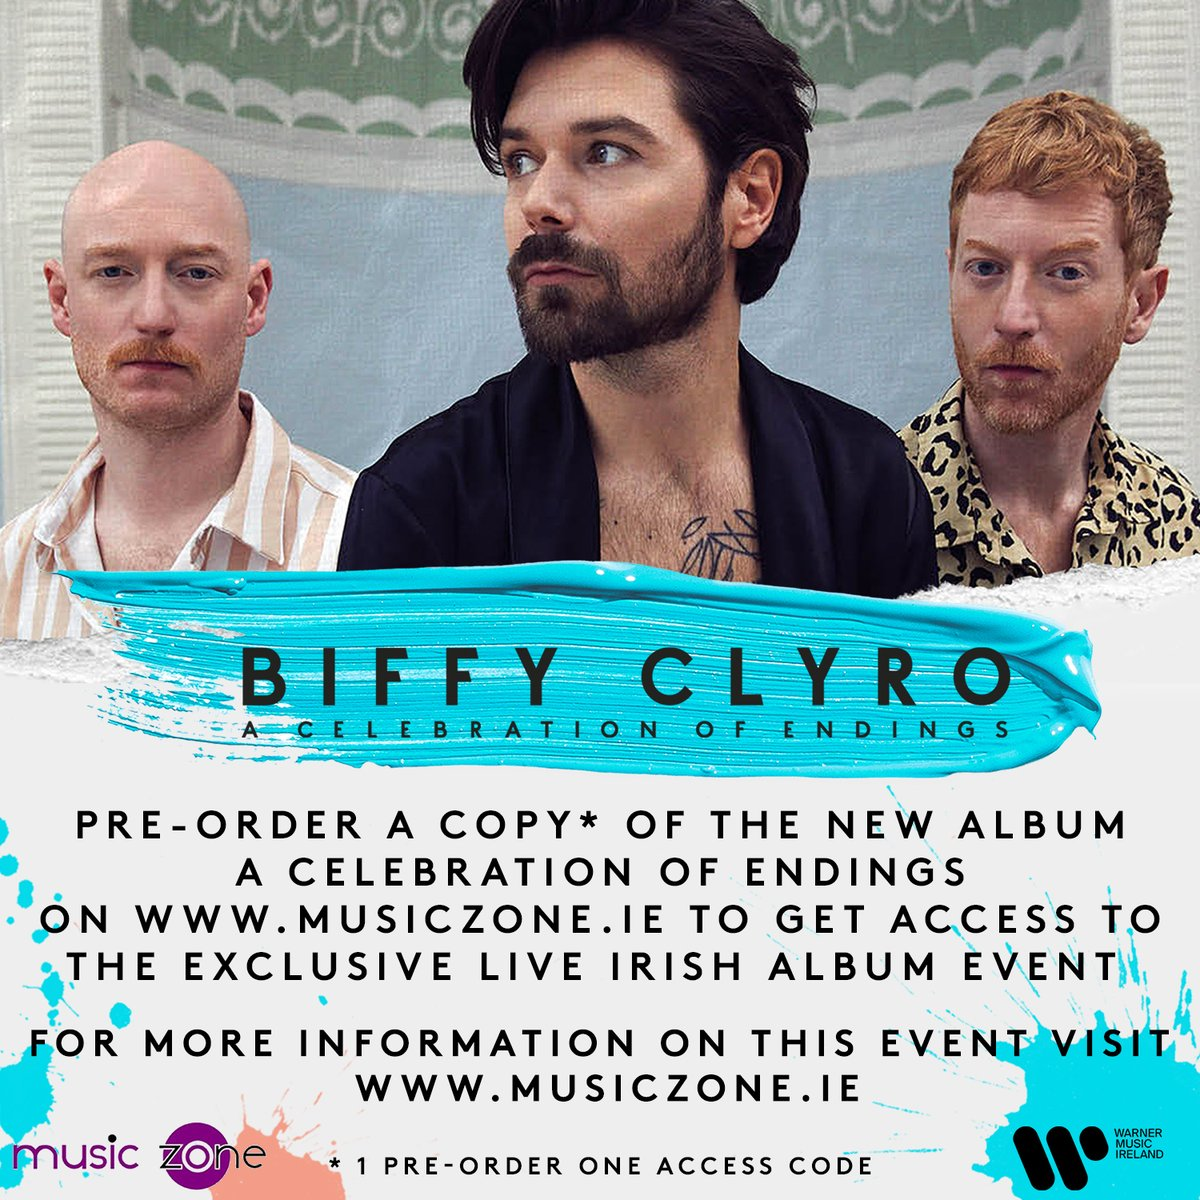 We are delighted to announce @BiffyClyro have partnered with @MusicZoneDV to celebrate the Irish release of the new album! Pre-order a A Celebration of Endings from @MusicZoneDV to gain access to a one off private virtual in-store zoom on August 18th. WMI.lnk.to/ACOEMUSICZONE